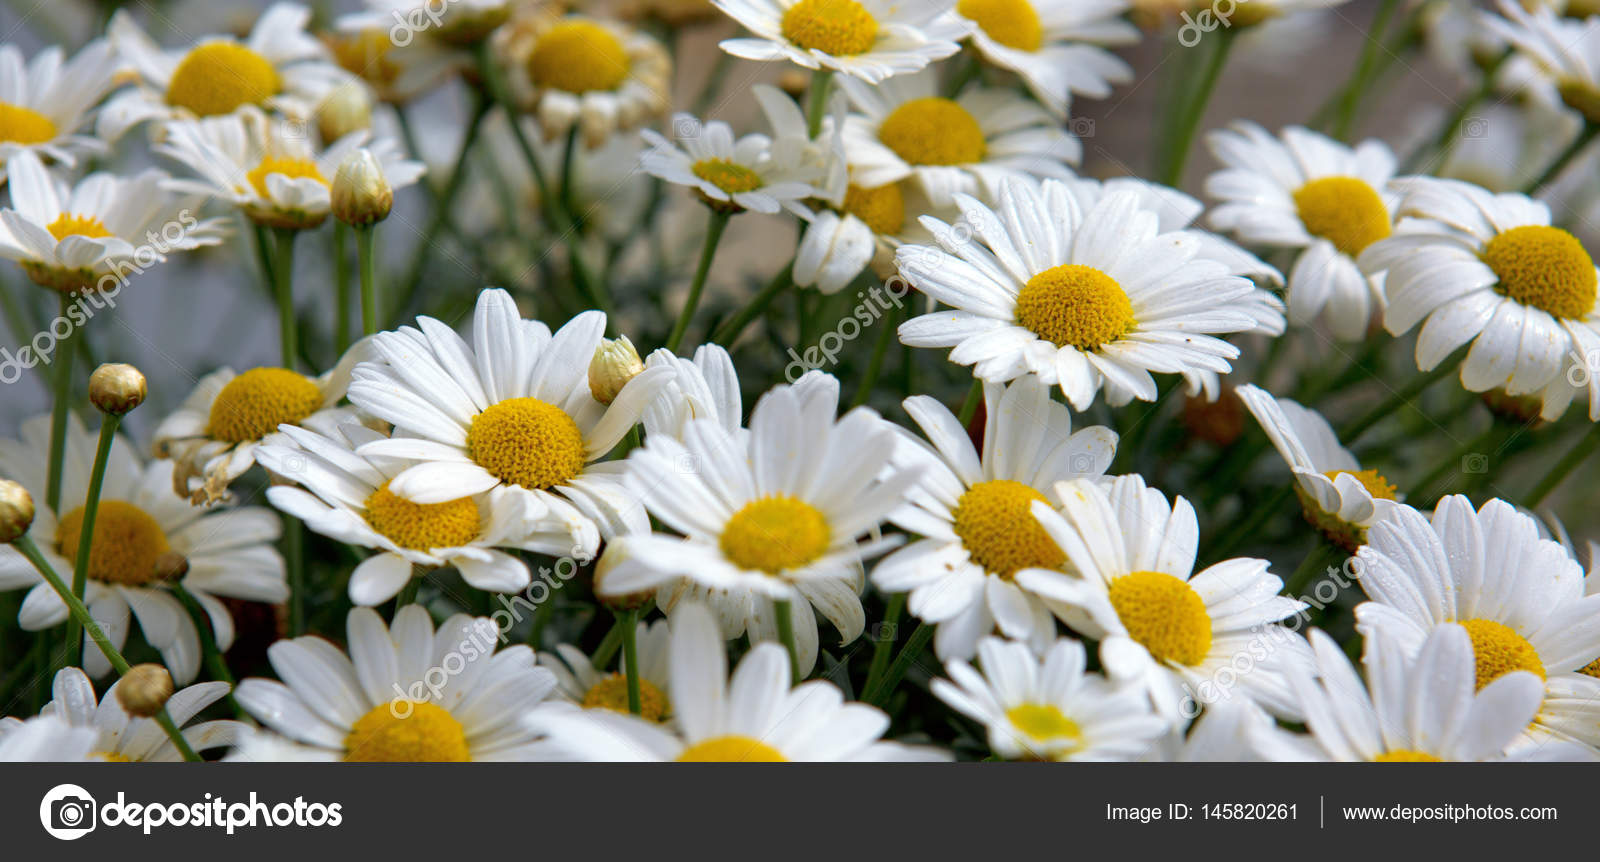 Macro of beautiful white daisies flowers stock photo swkunst daisy flowers backgroundcro of beautiful white daisies flowers photo by swkunst izmirmasajfo